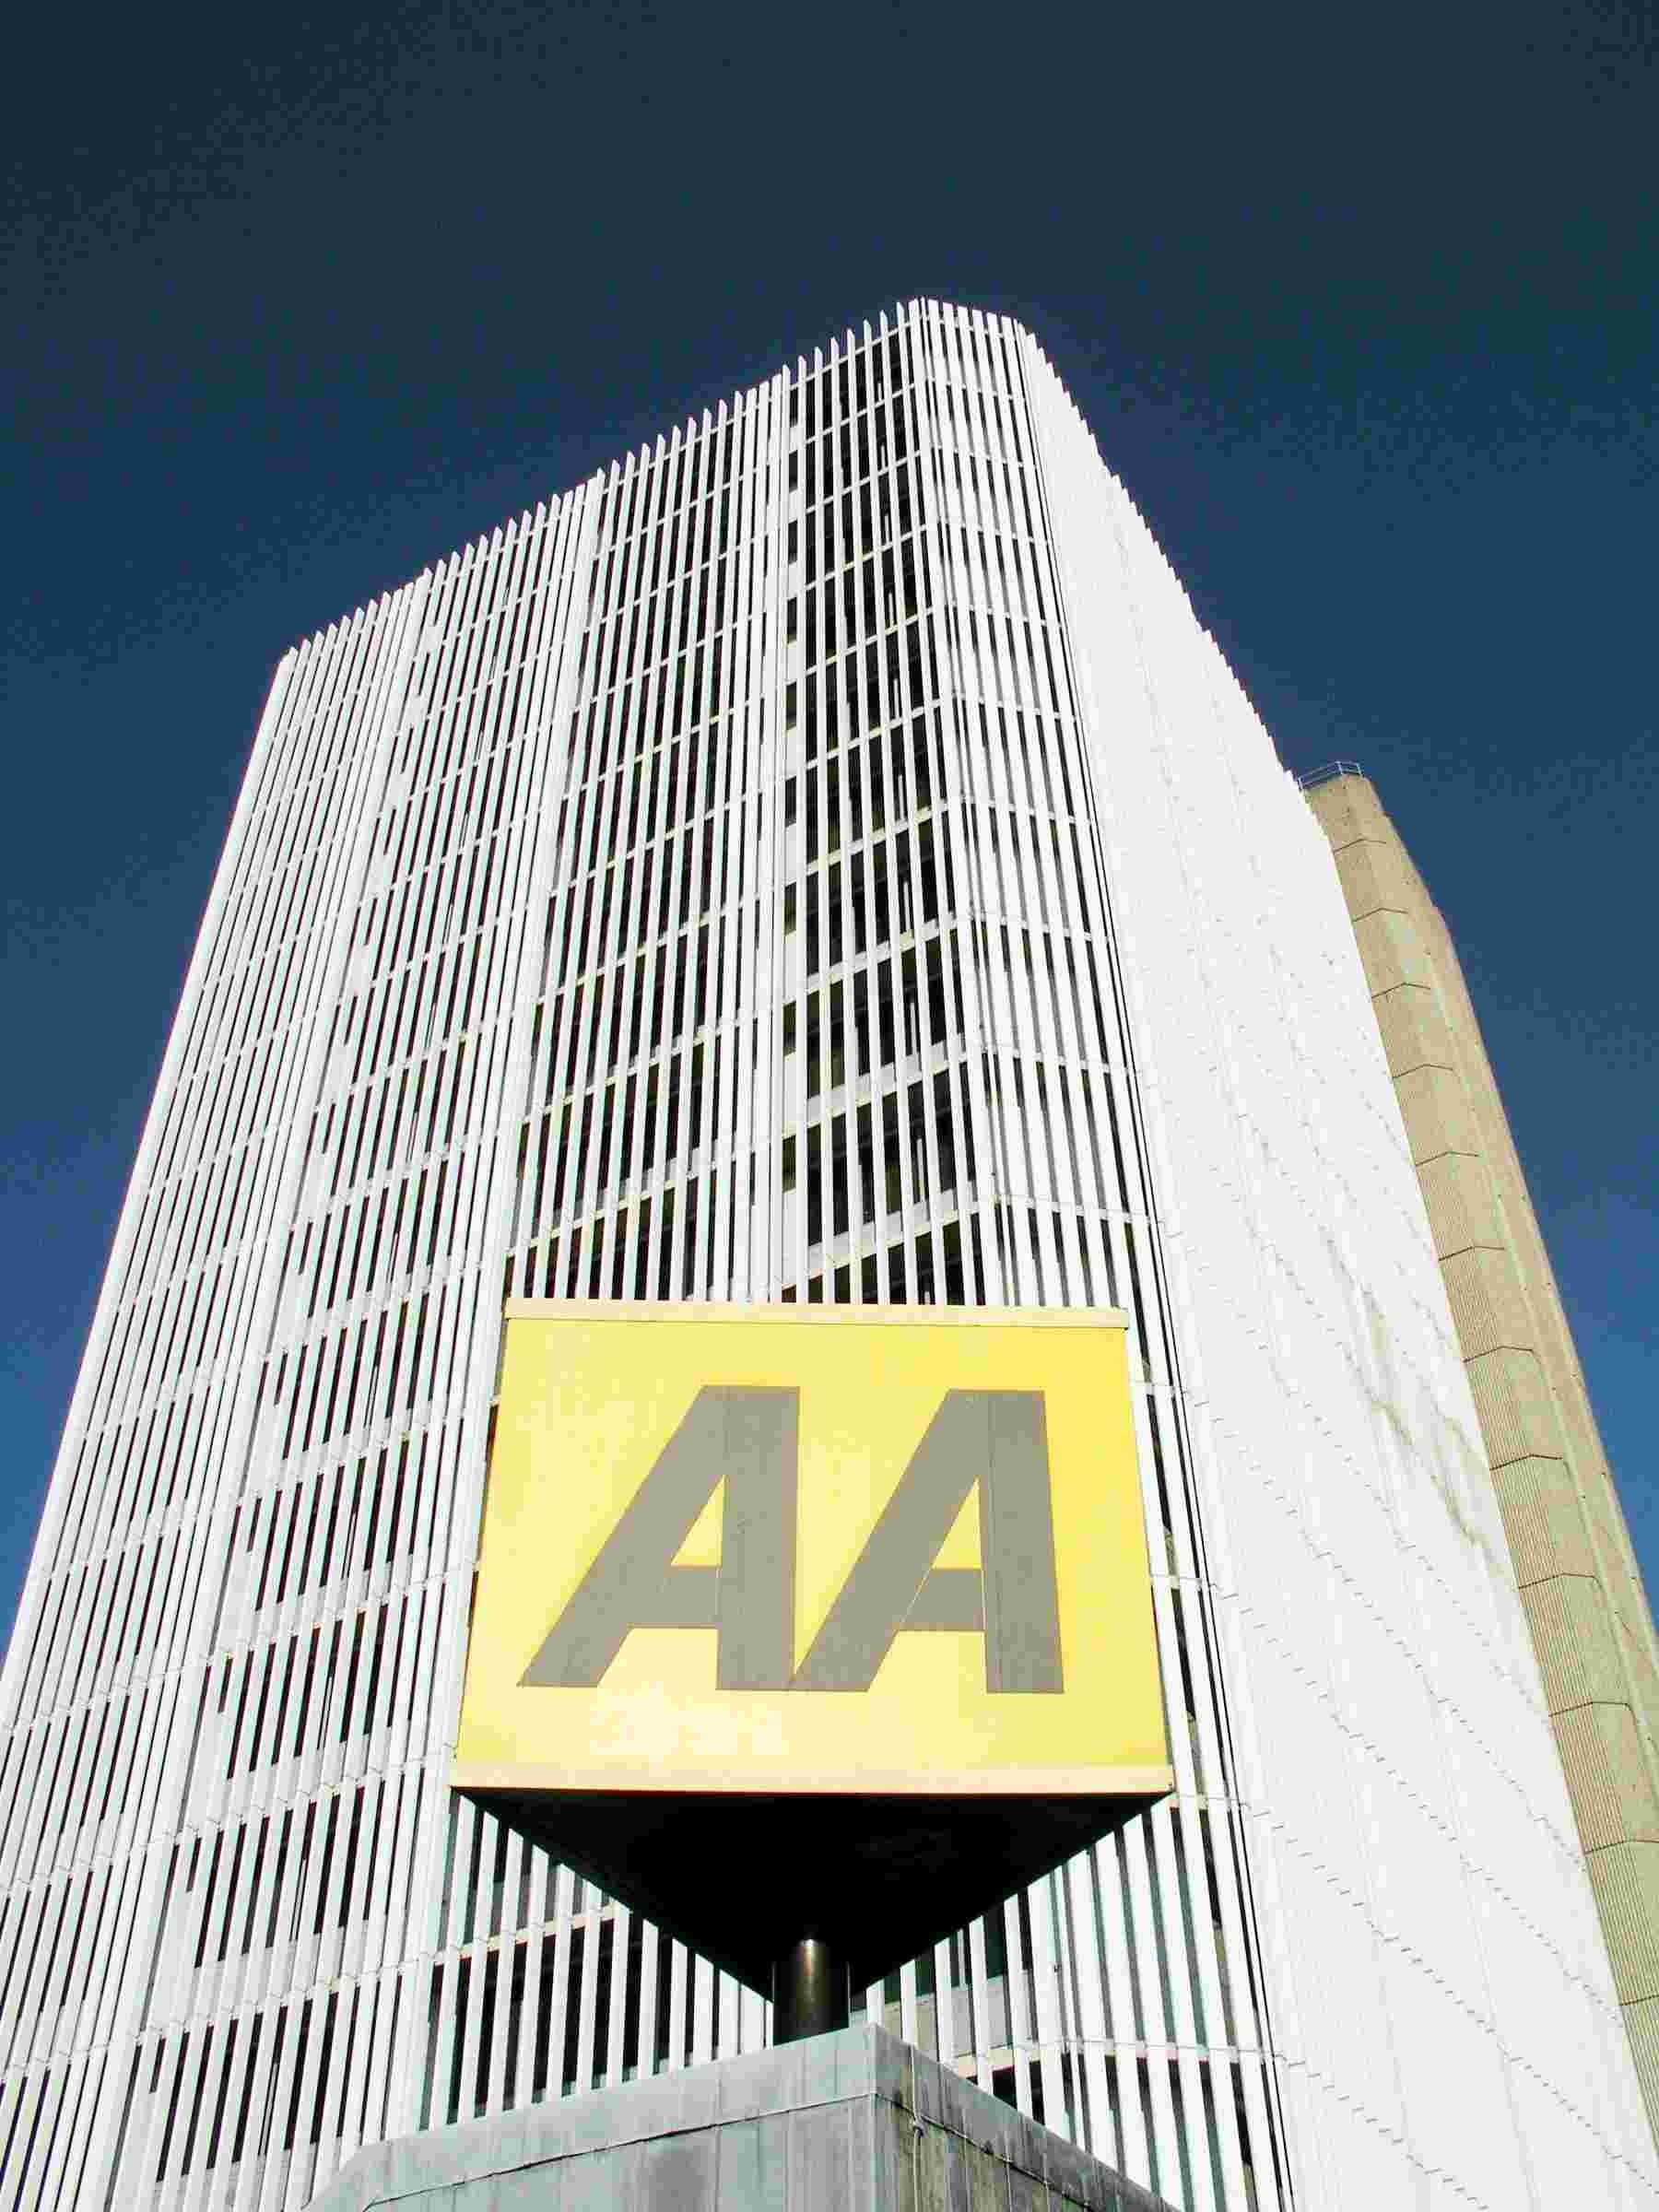 Fanum House, the Basingstoke headquarters of the AA